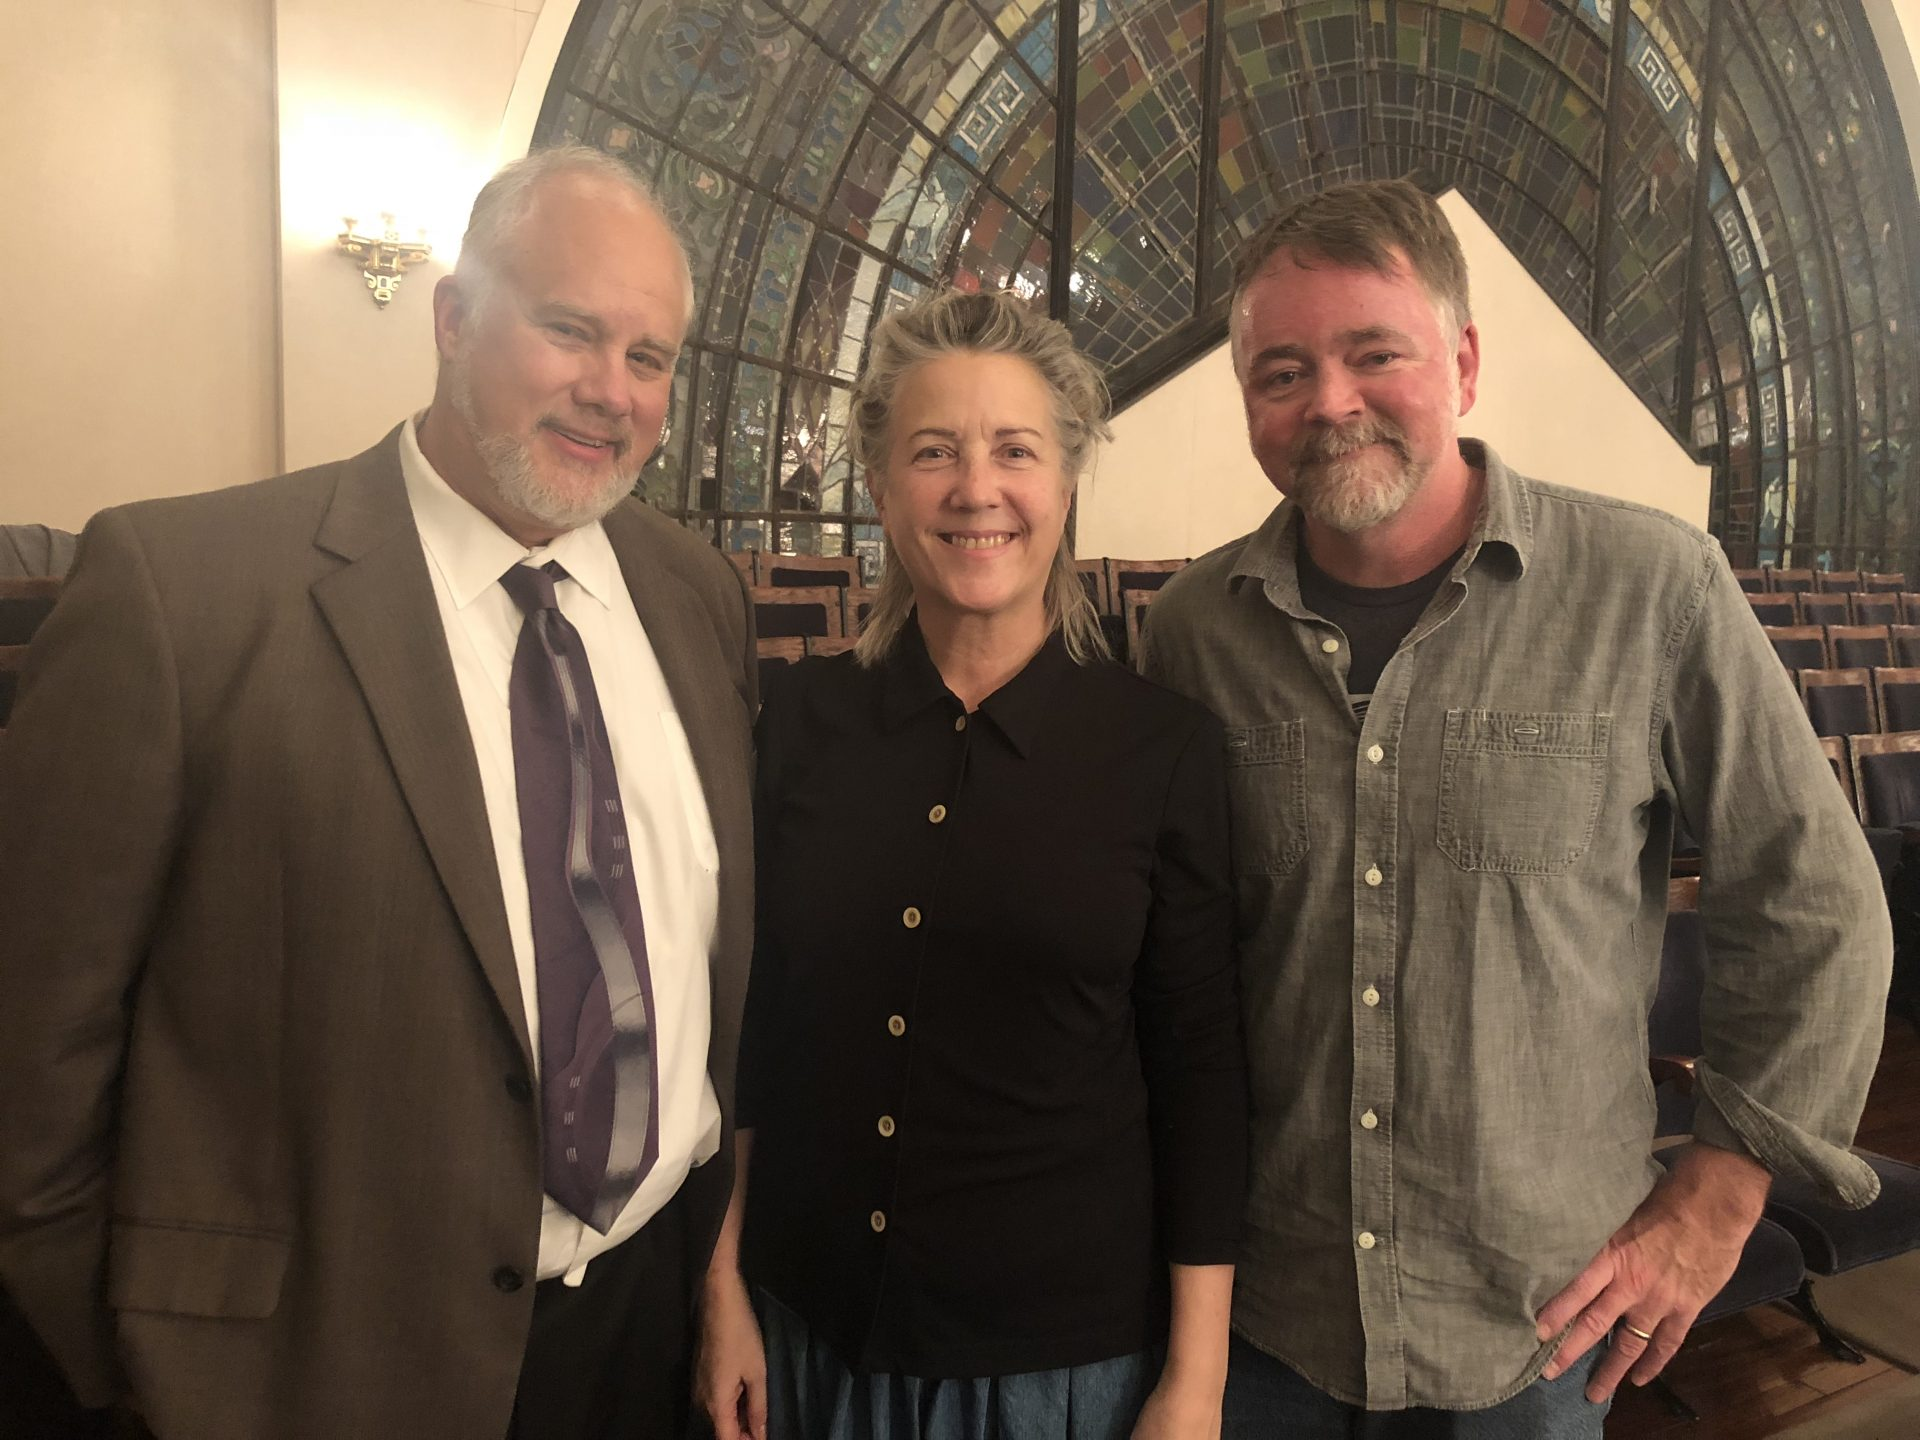 From left to right, Tom Cox, Jean Cox, and Pastor Jeff Eddings, are seen inside Rodef Shalom Congregation in Pittsburgh. They attended services Friday evening to show solidarity with the Jewish community.